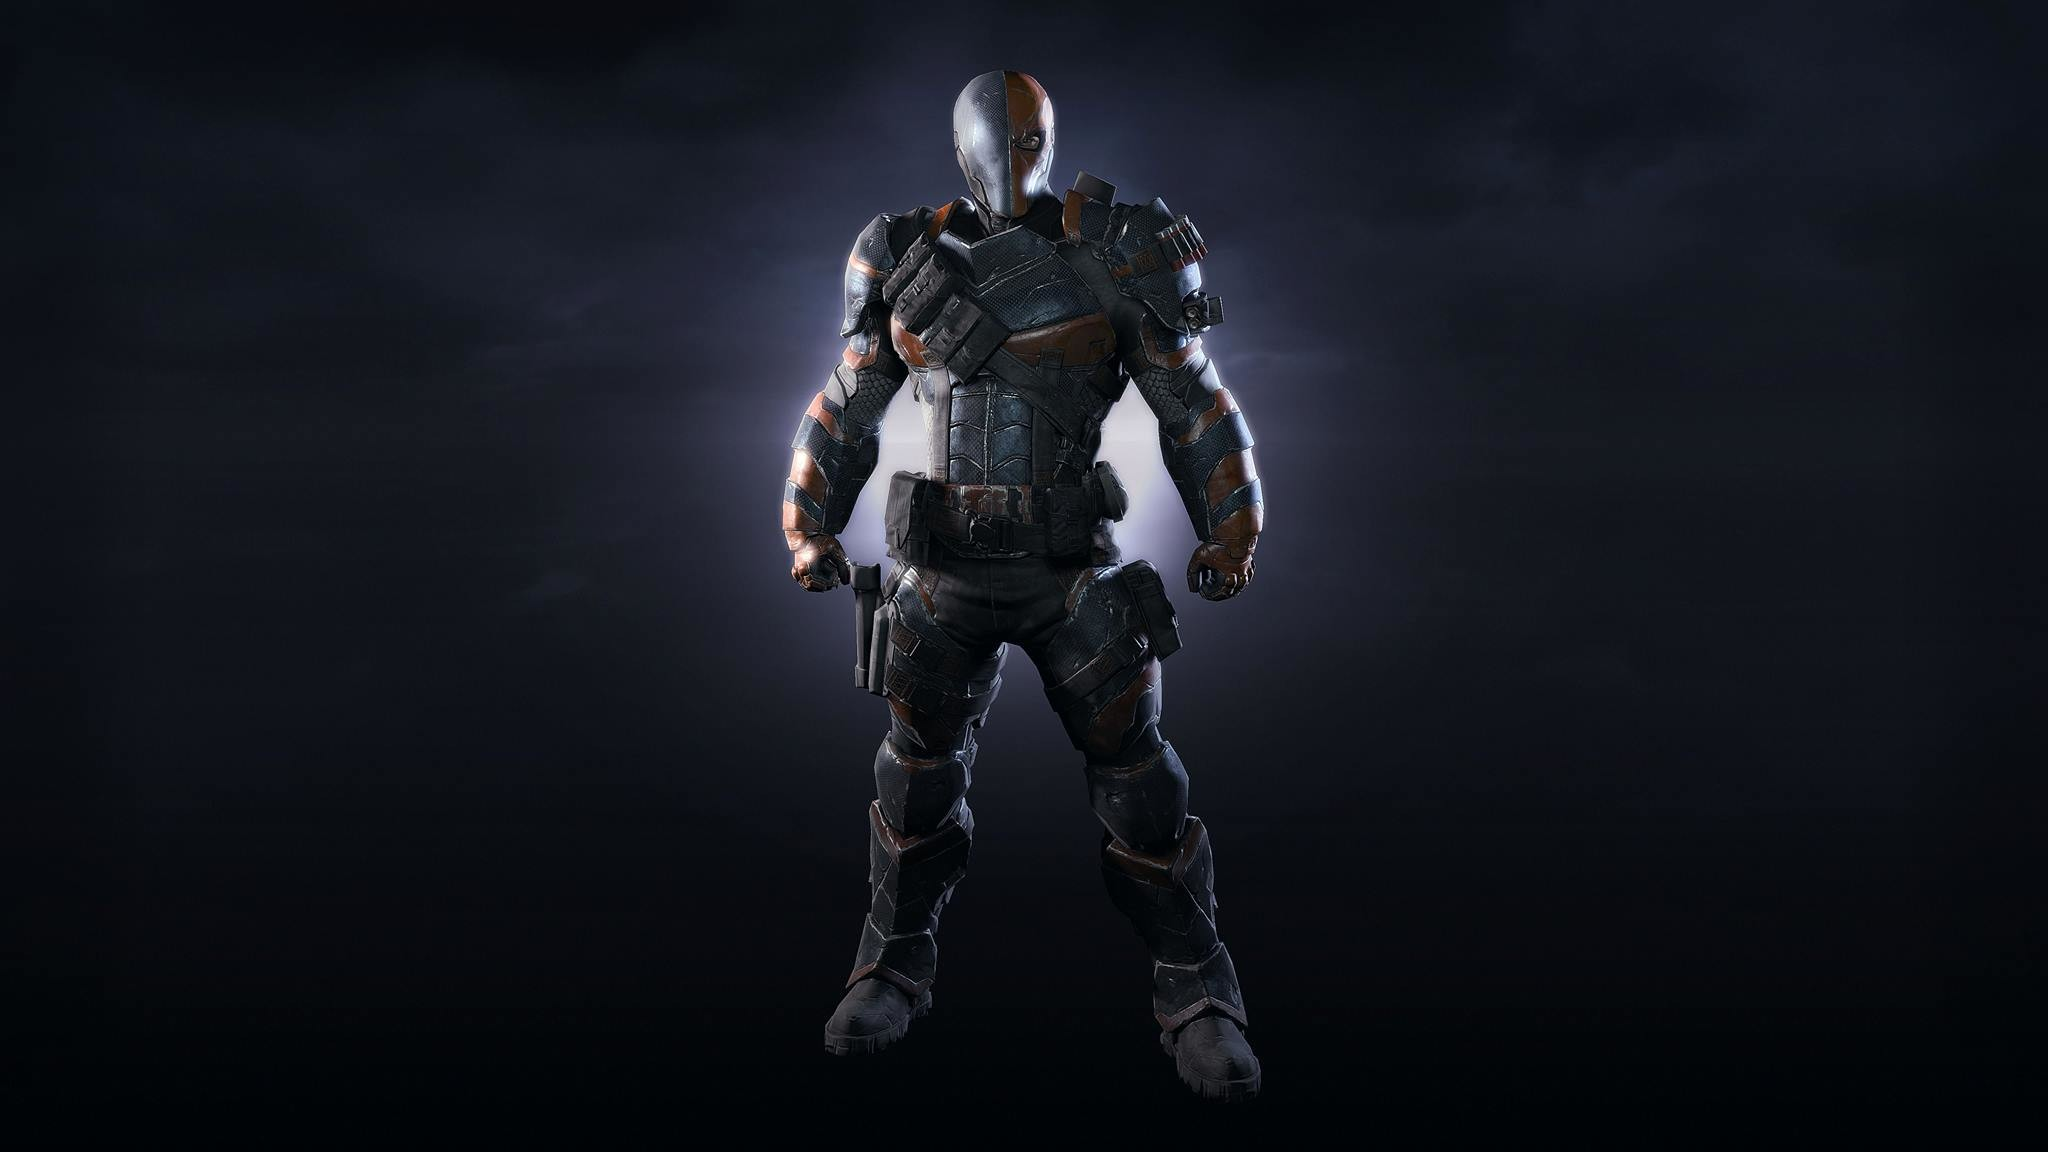 Agent Venom Wallpapers High Quality Resolution with HD Wallpaper Resolution  px 76.89 KB Movies 1080p